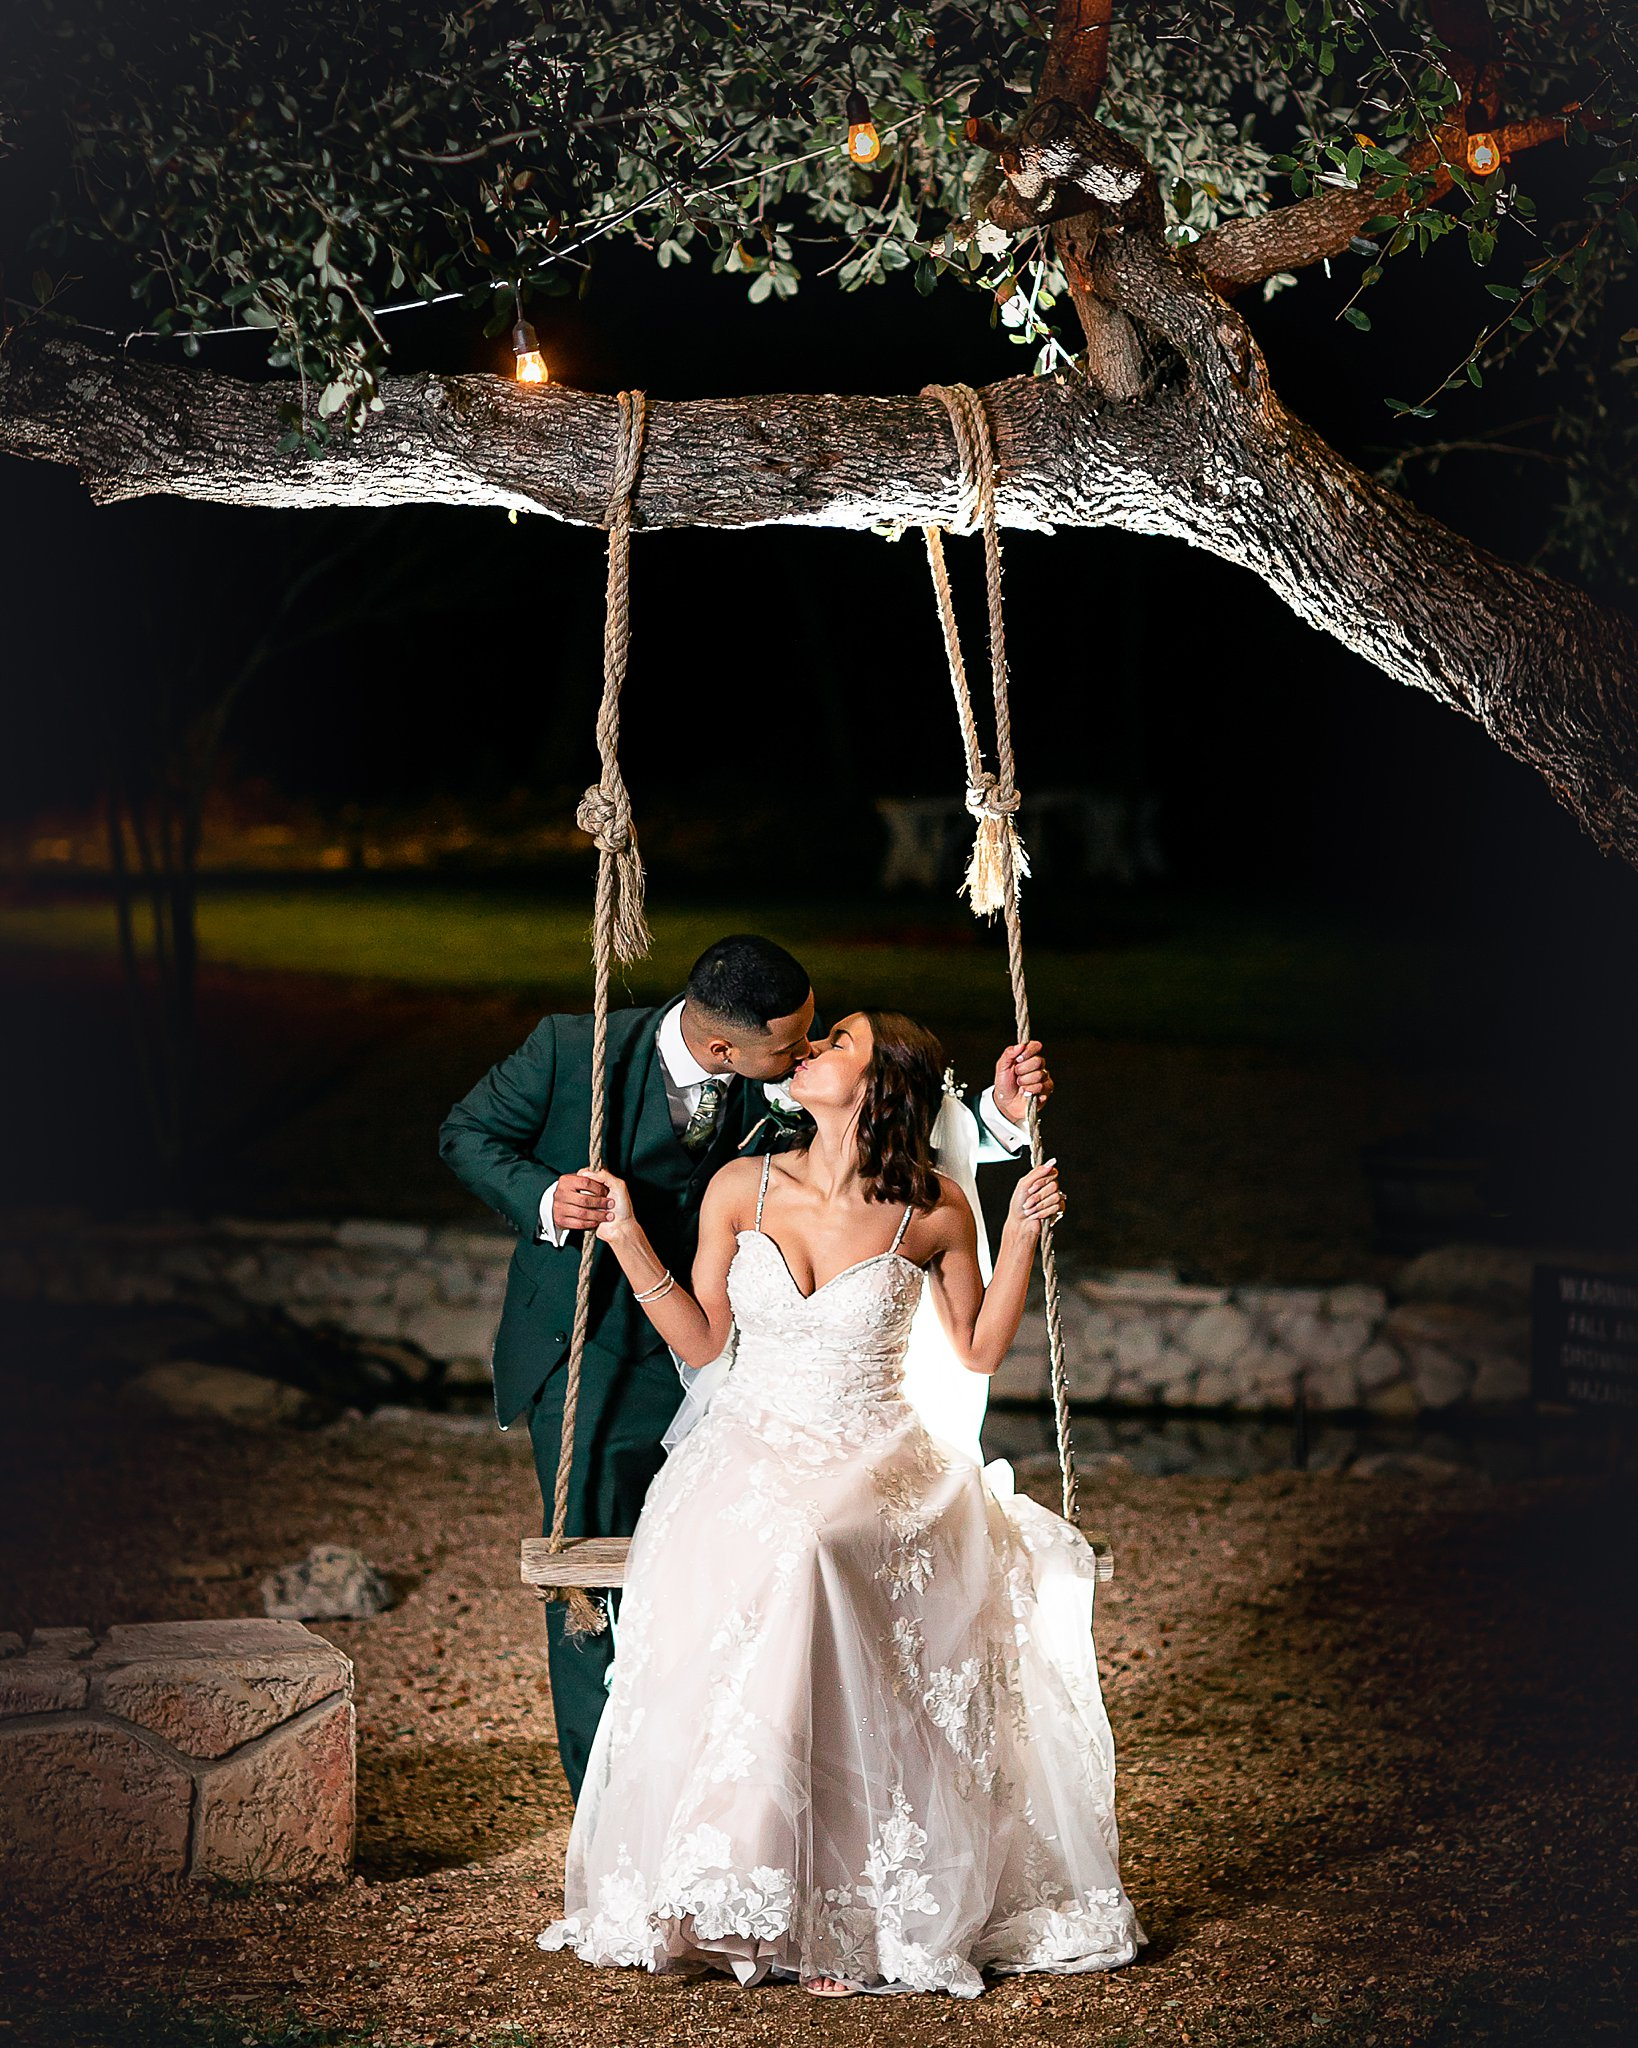 Carly-Barton-Photography-Texas-Wedding-Photographer-Western-Sky-Wedding-Event-Venue-Emerald-Green-Theme_0090.jpg